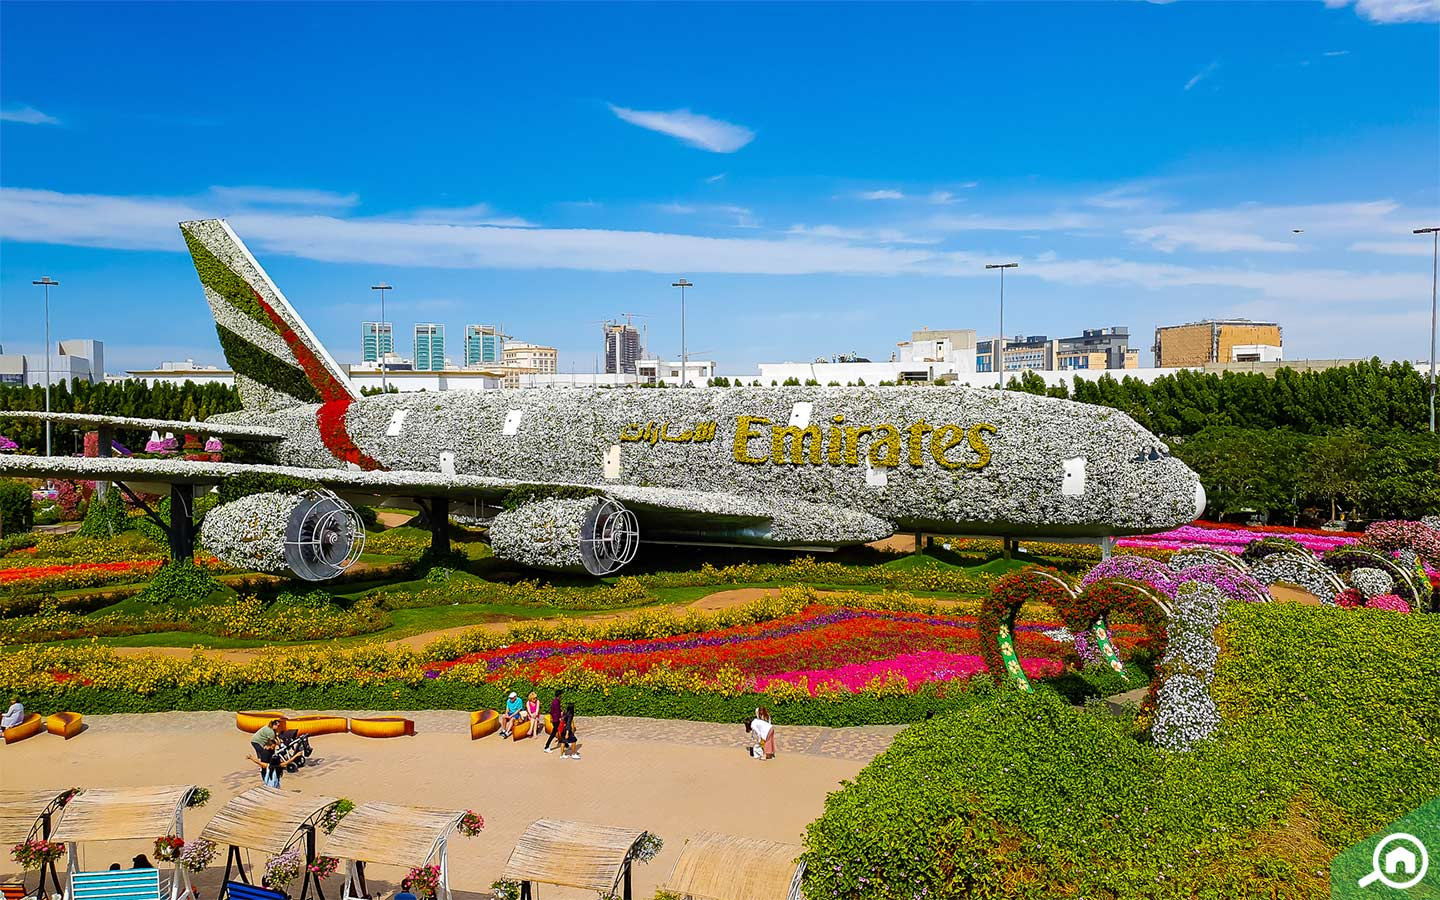 Life-sized Emirates A380 model at the Dubai Miracle Garden